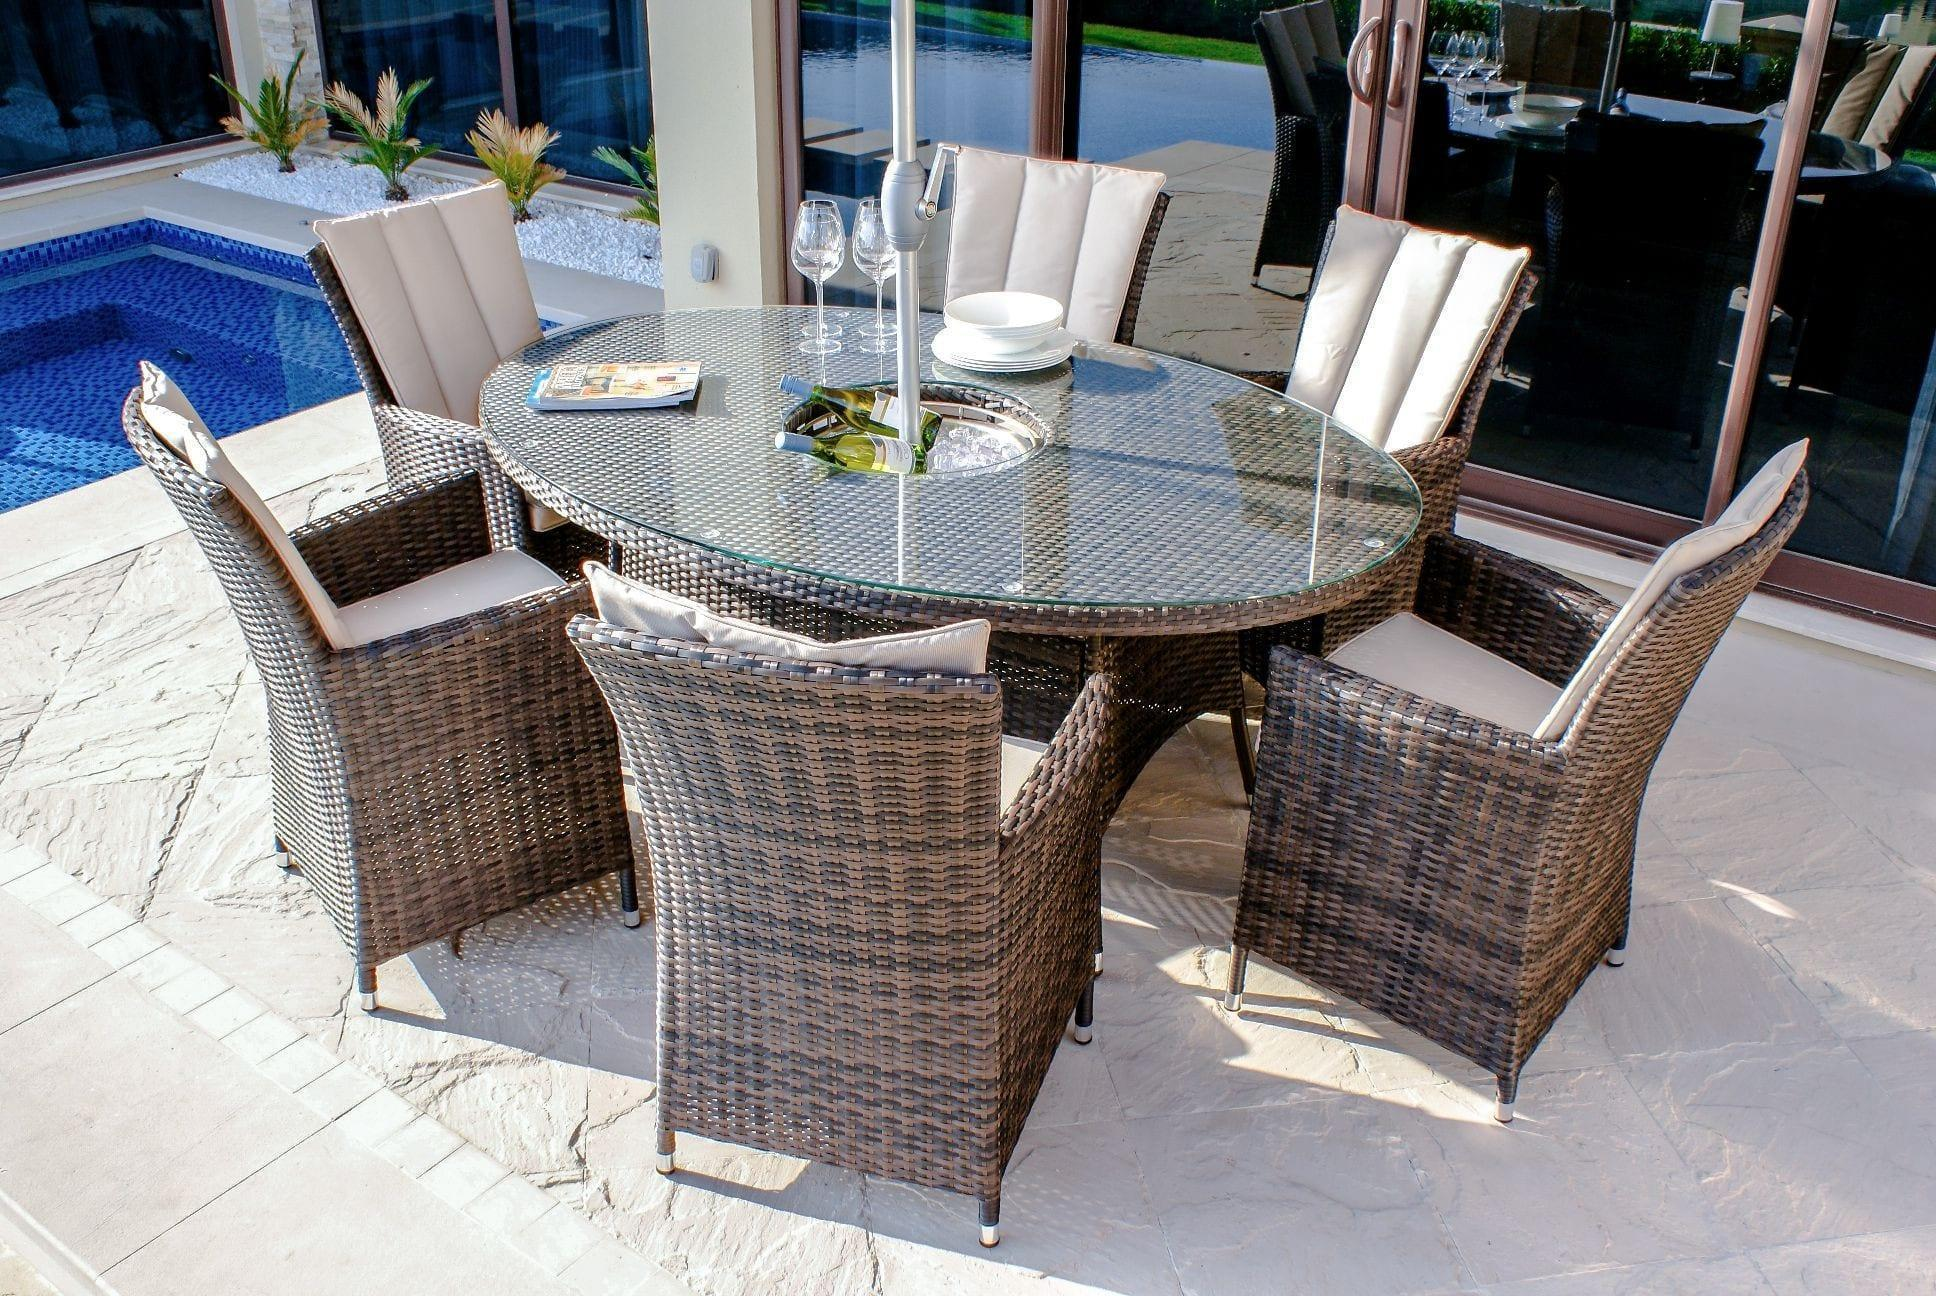 6 seat oval table rattan garden dining set inset ice bucket brown weave womacks of bawtry - Rattan Garden Furniture 6 Seater